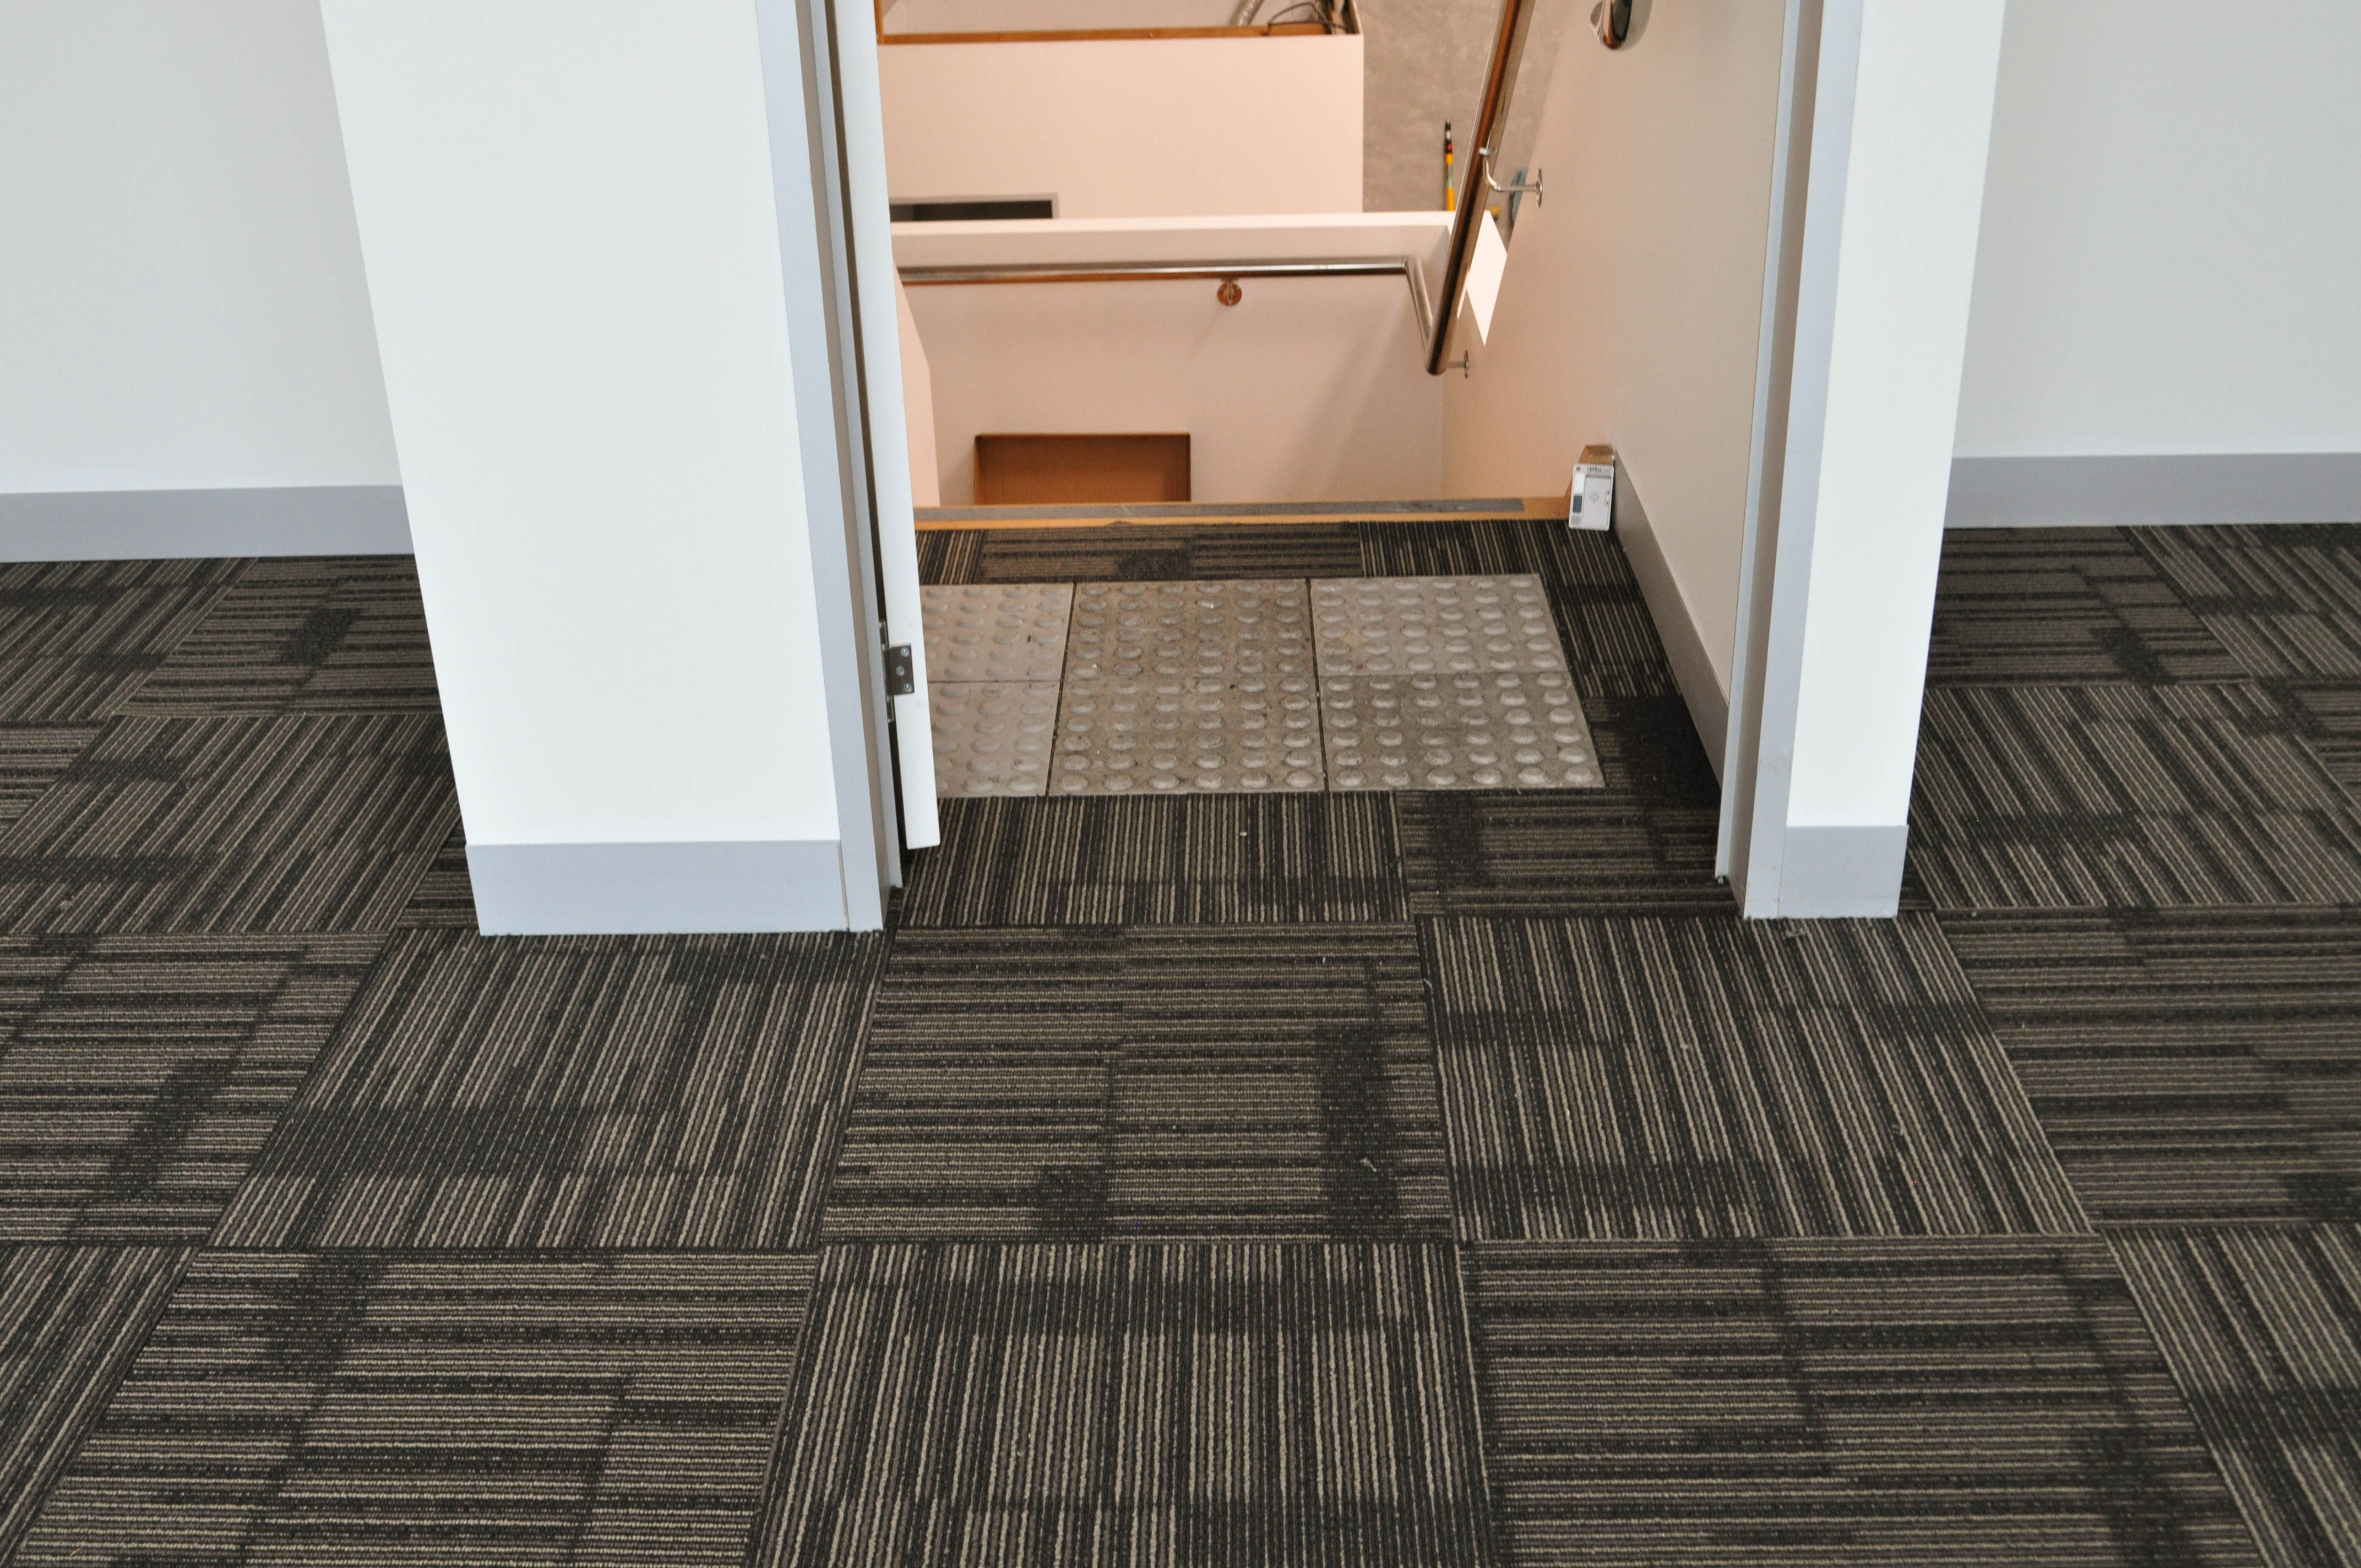 Showing a floor that has a patterned carpet tile installed by Concord Floors on it. The building is in Derrimut.